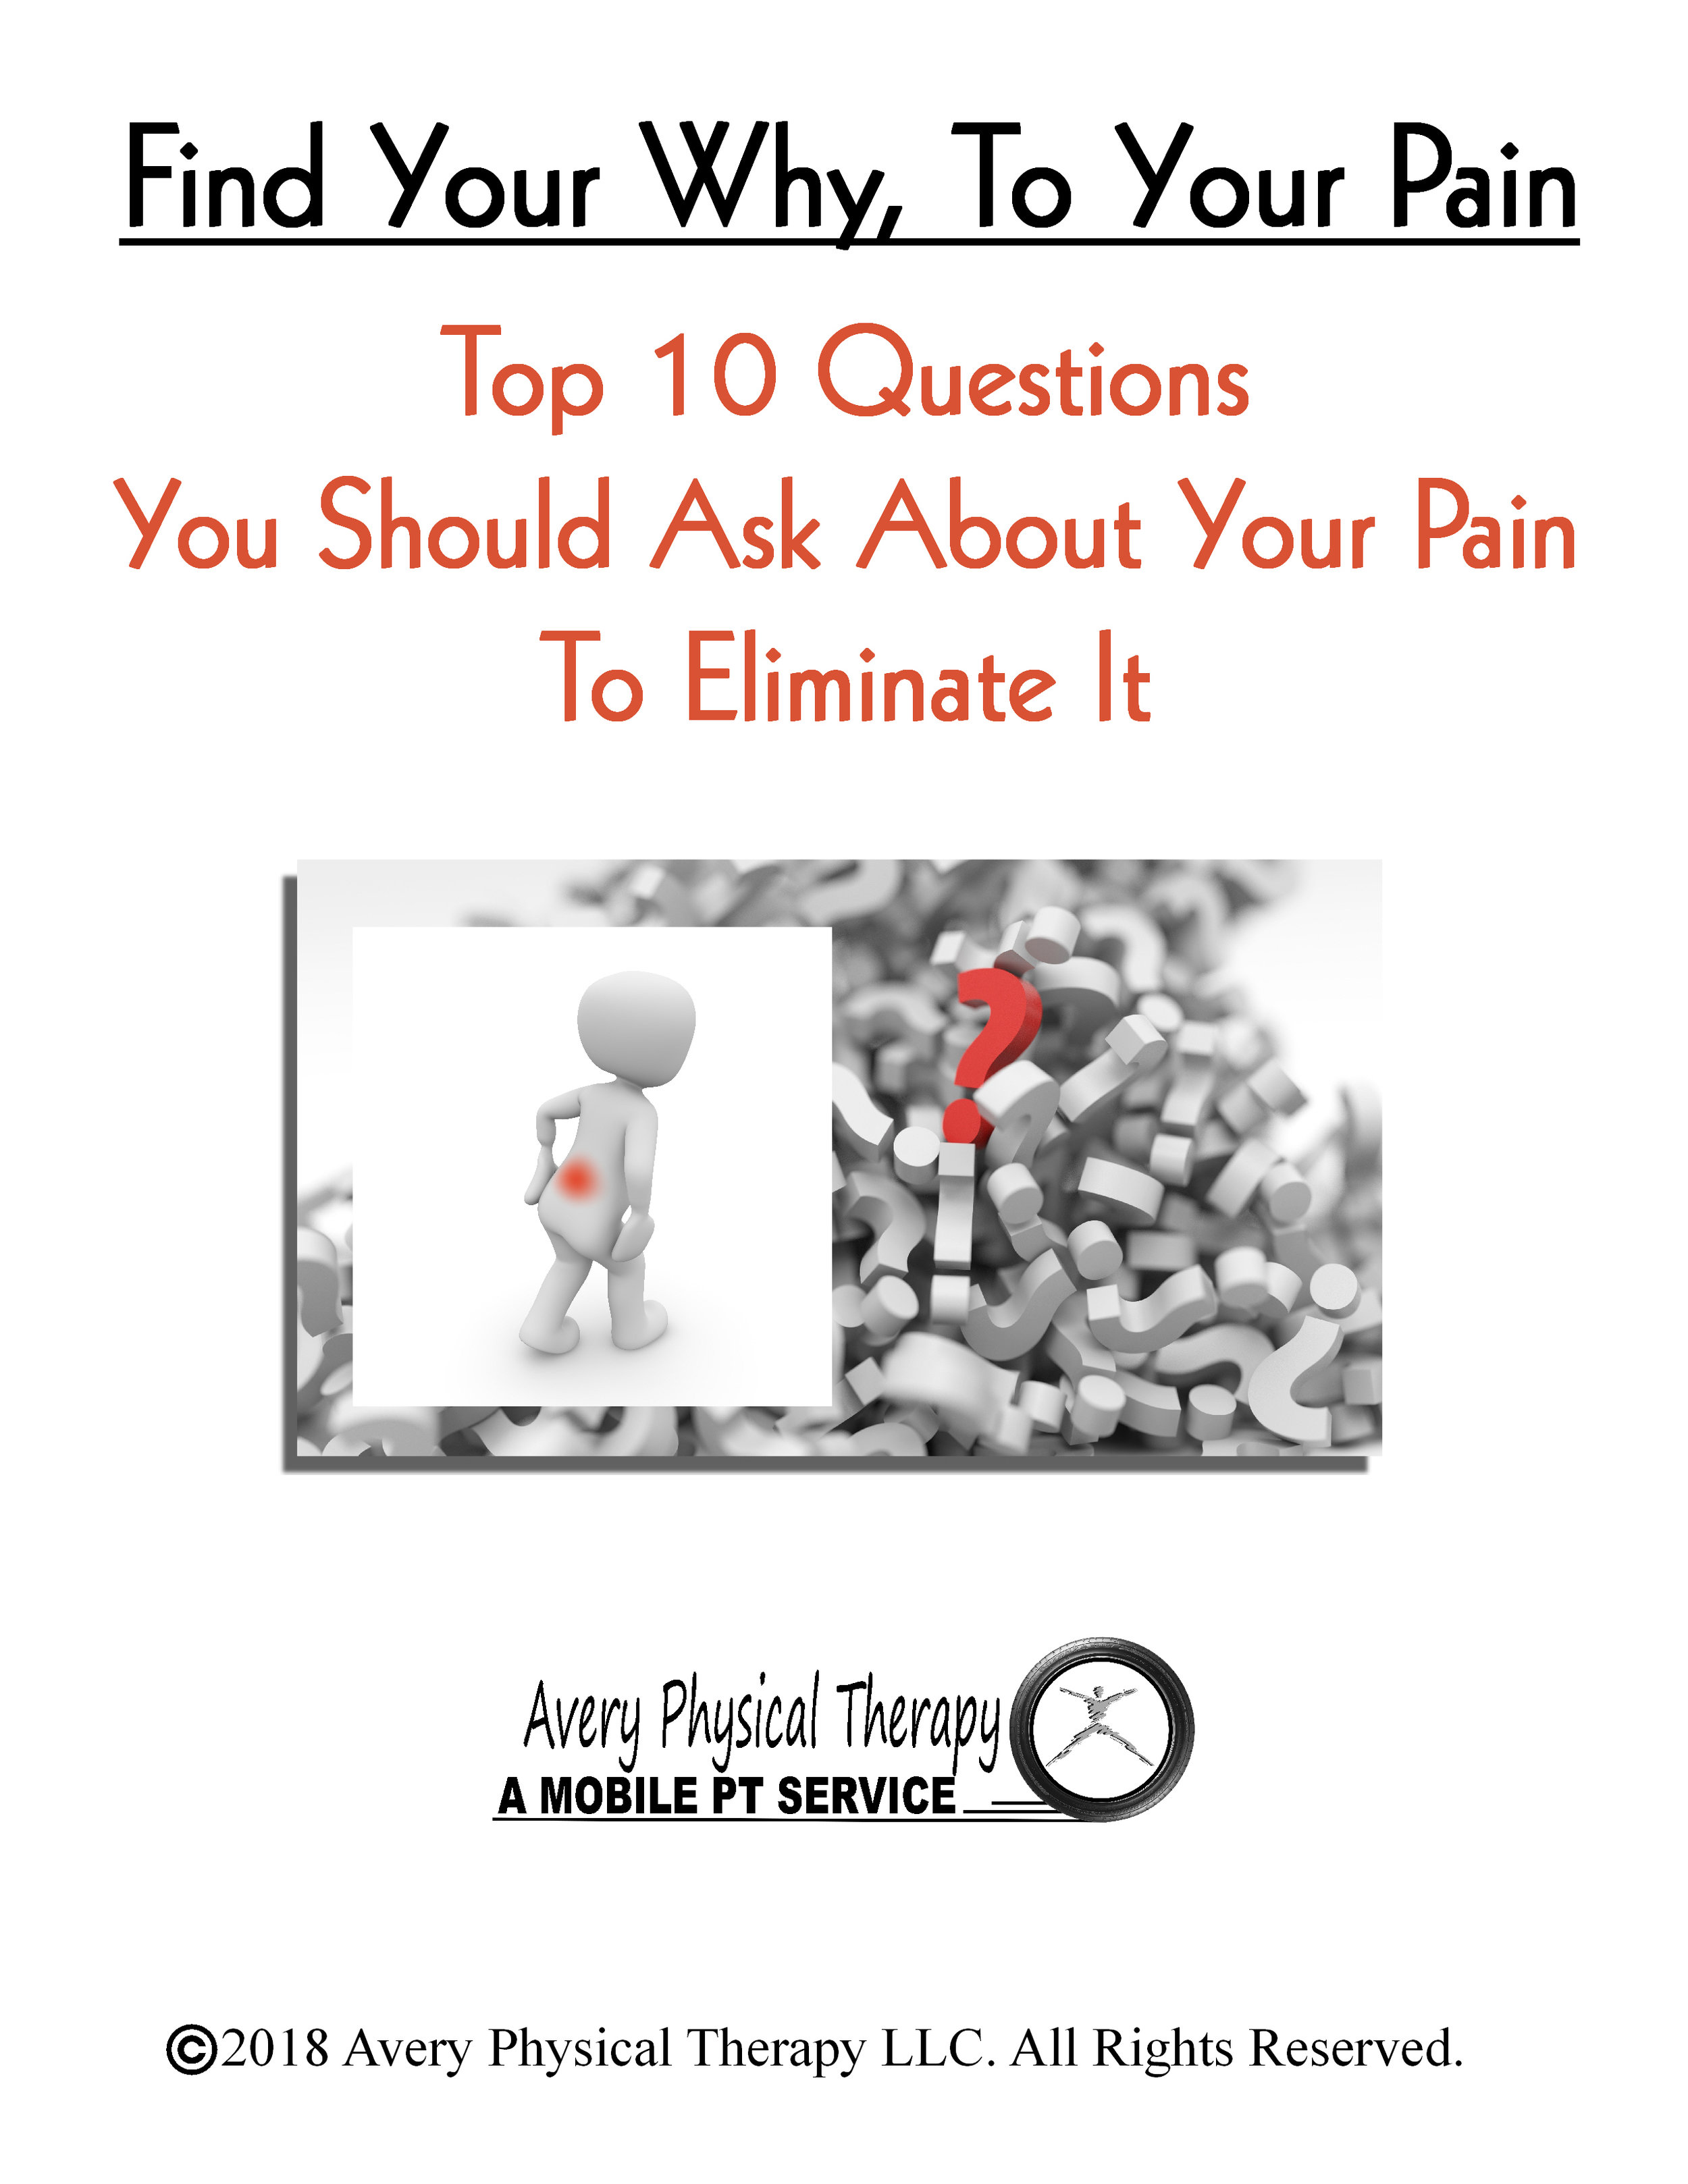 Top 10 Pain Questions 1-3.JPG